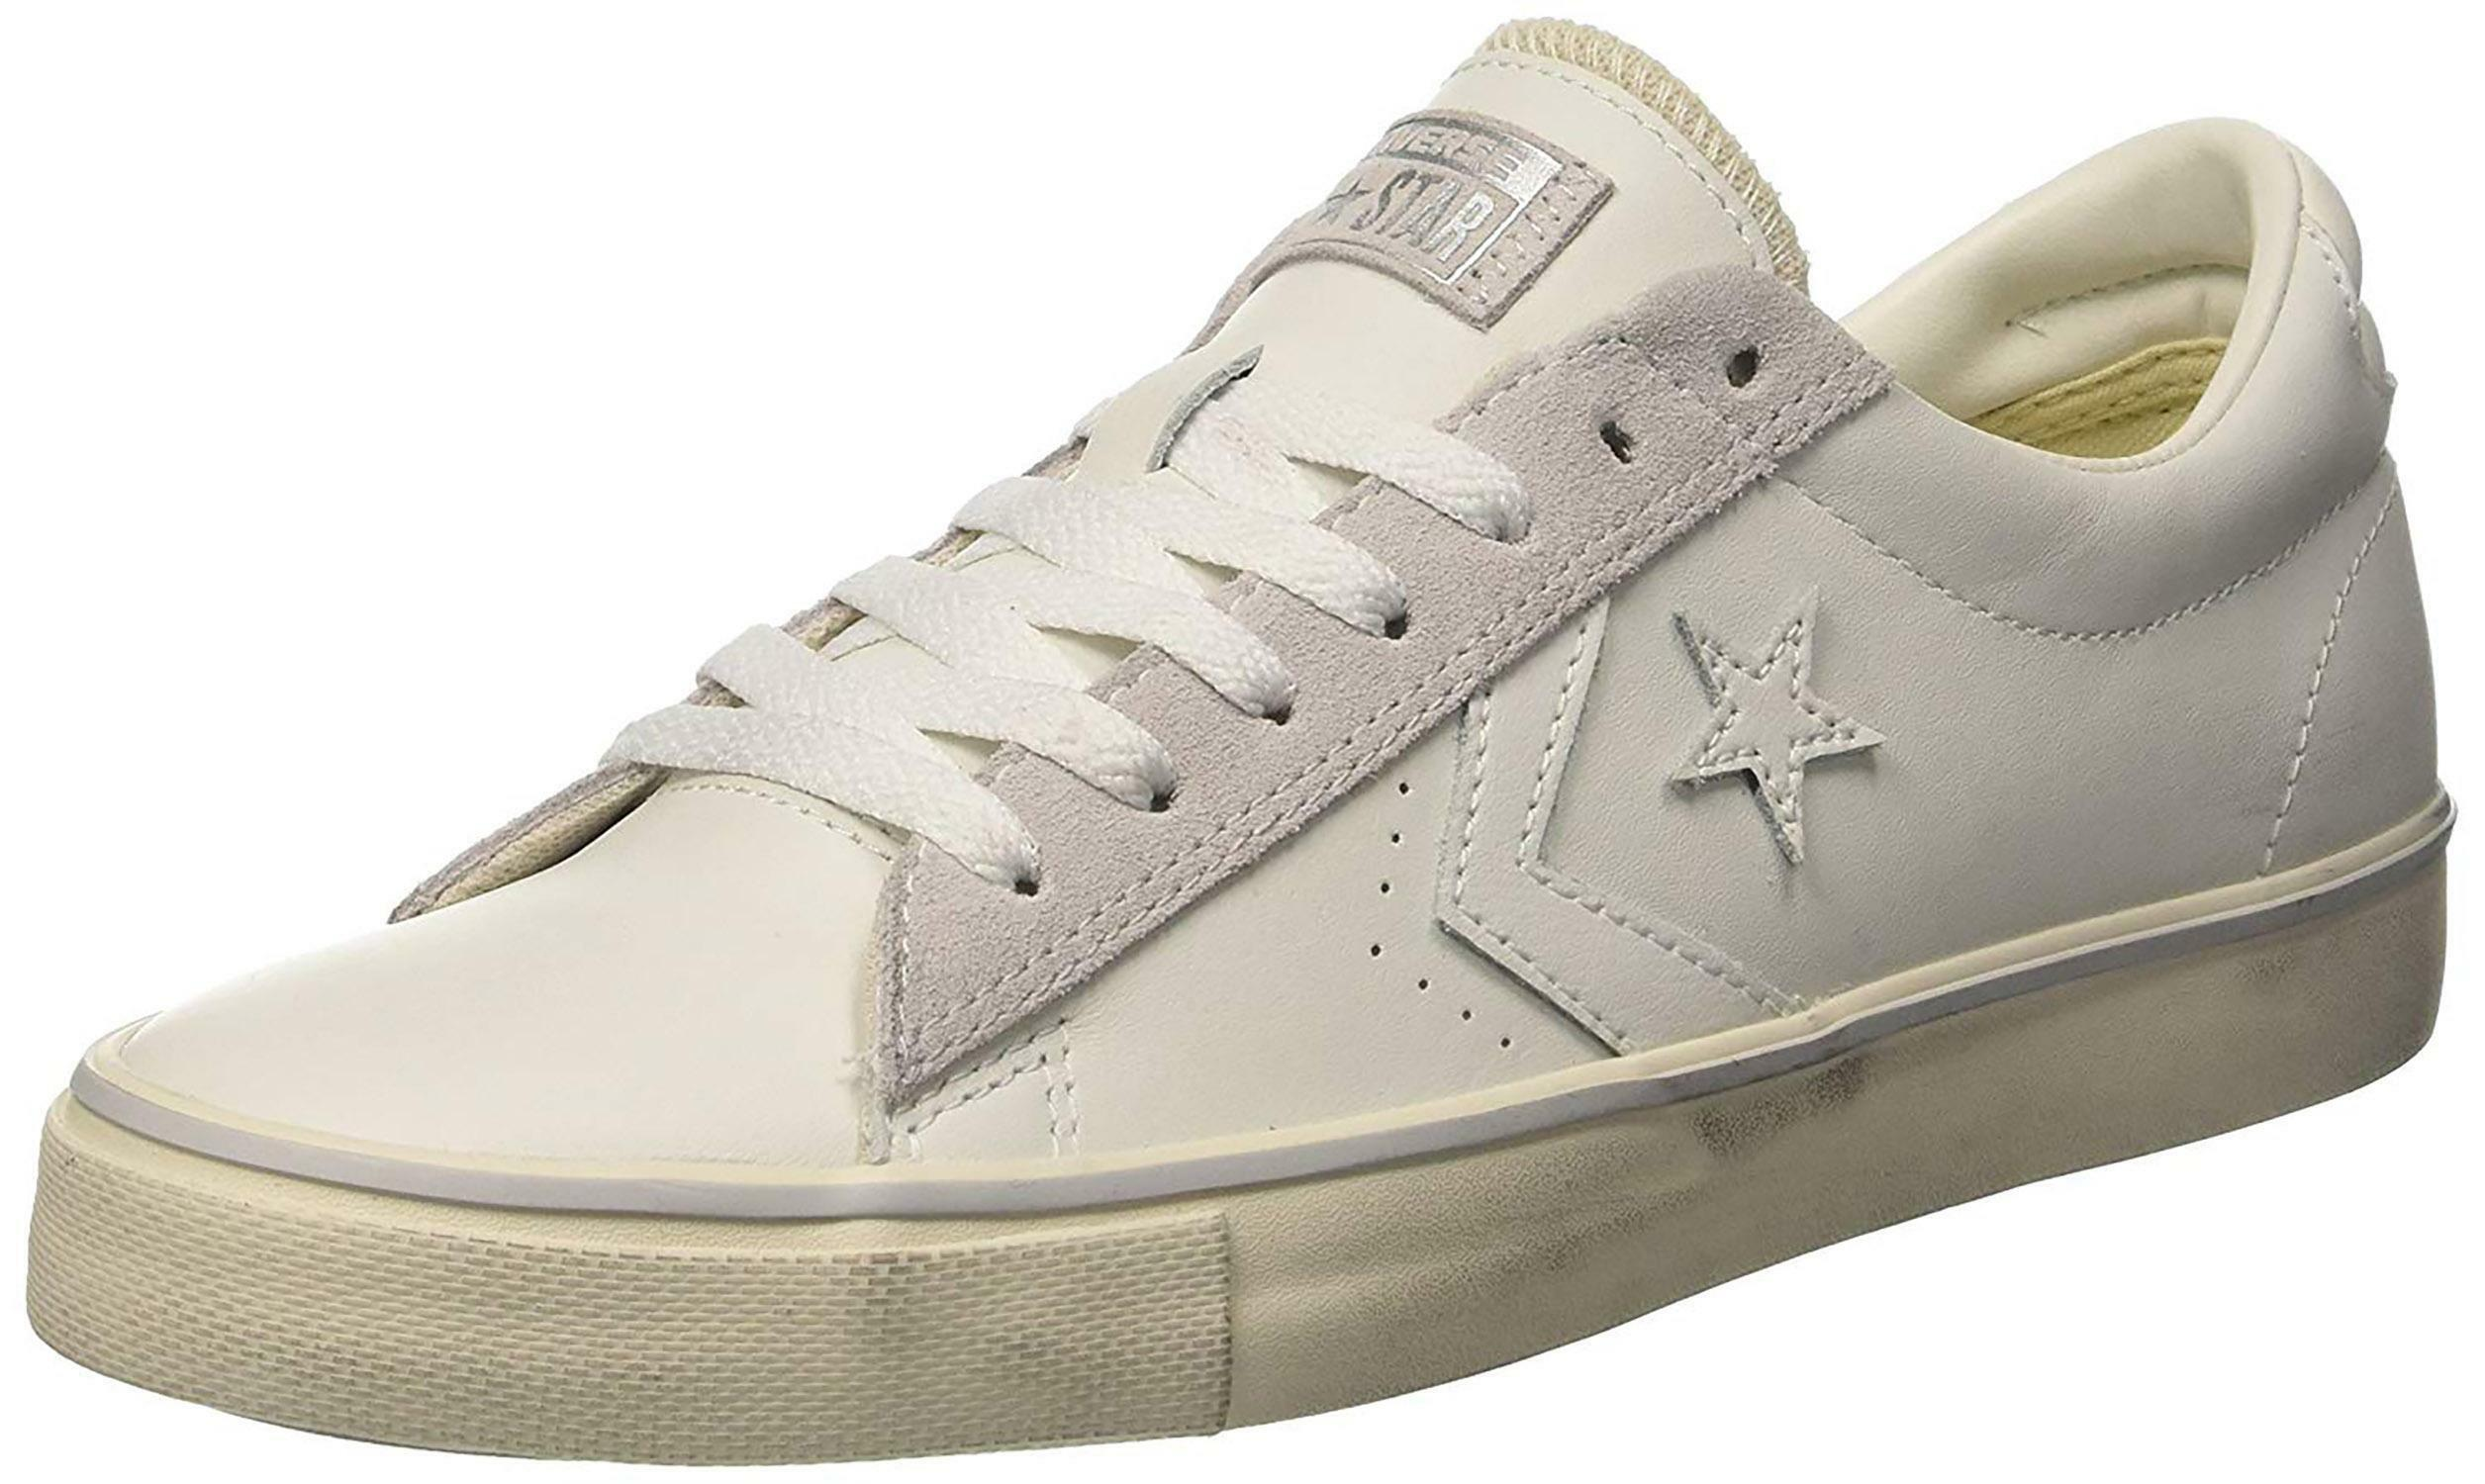 2converse pro leather uomo bianche